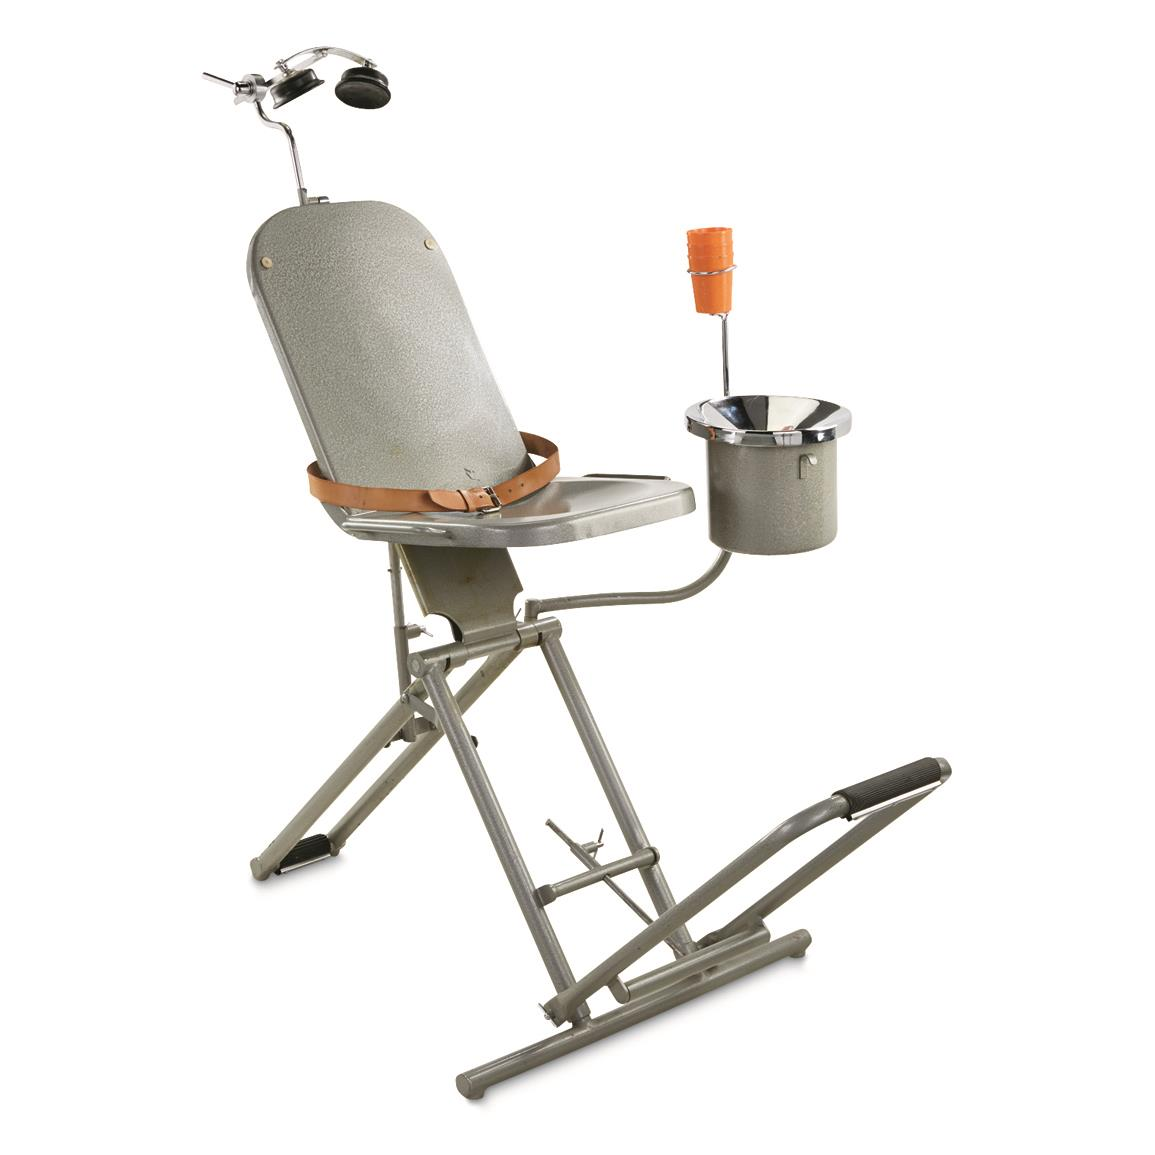 Czech Military Surplus Dental Chair, Used